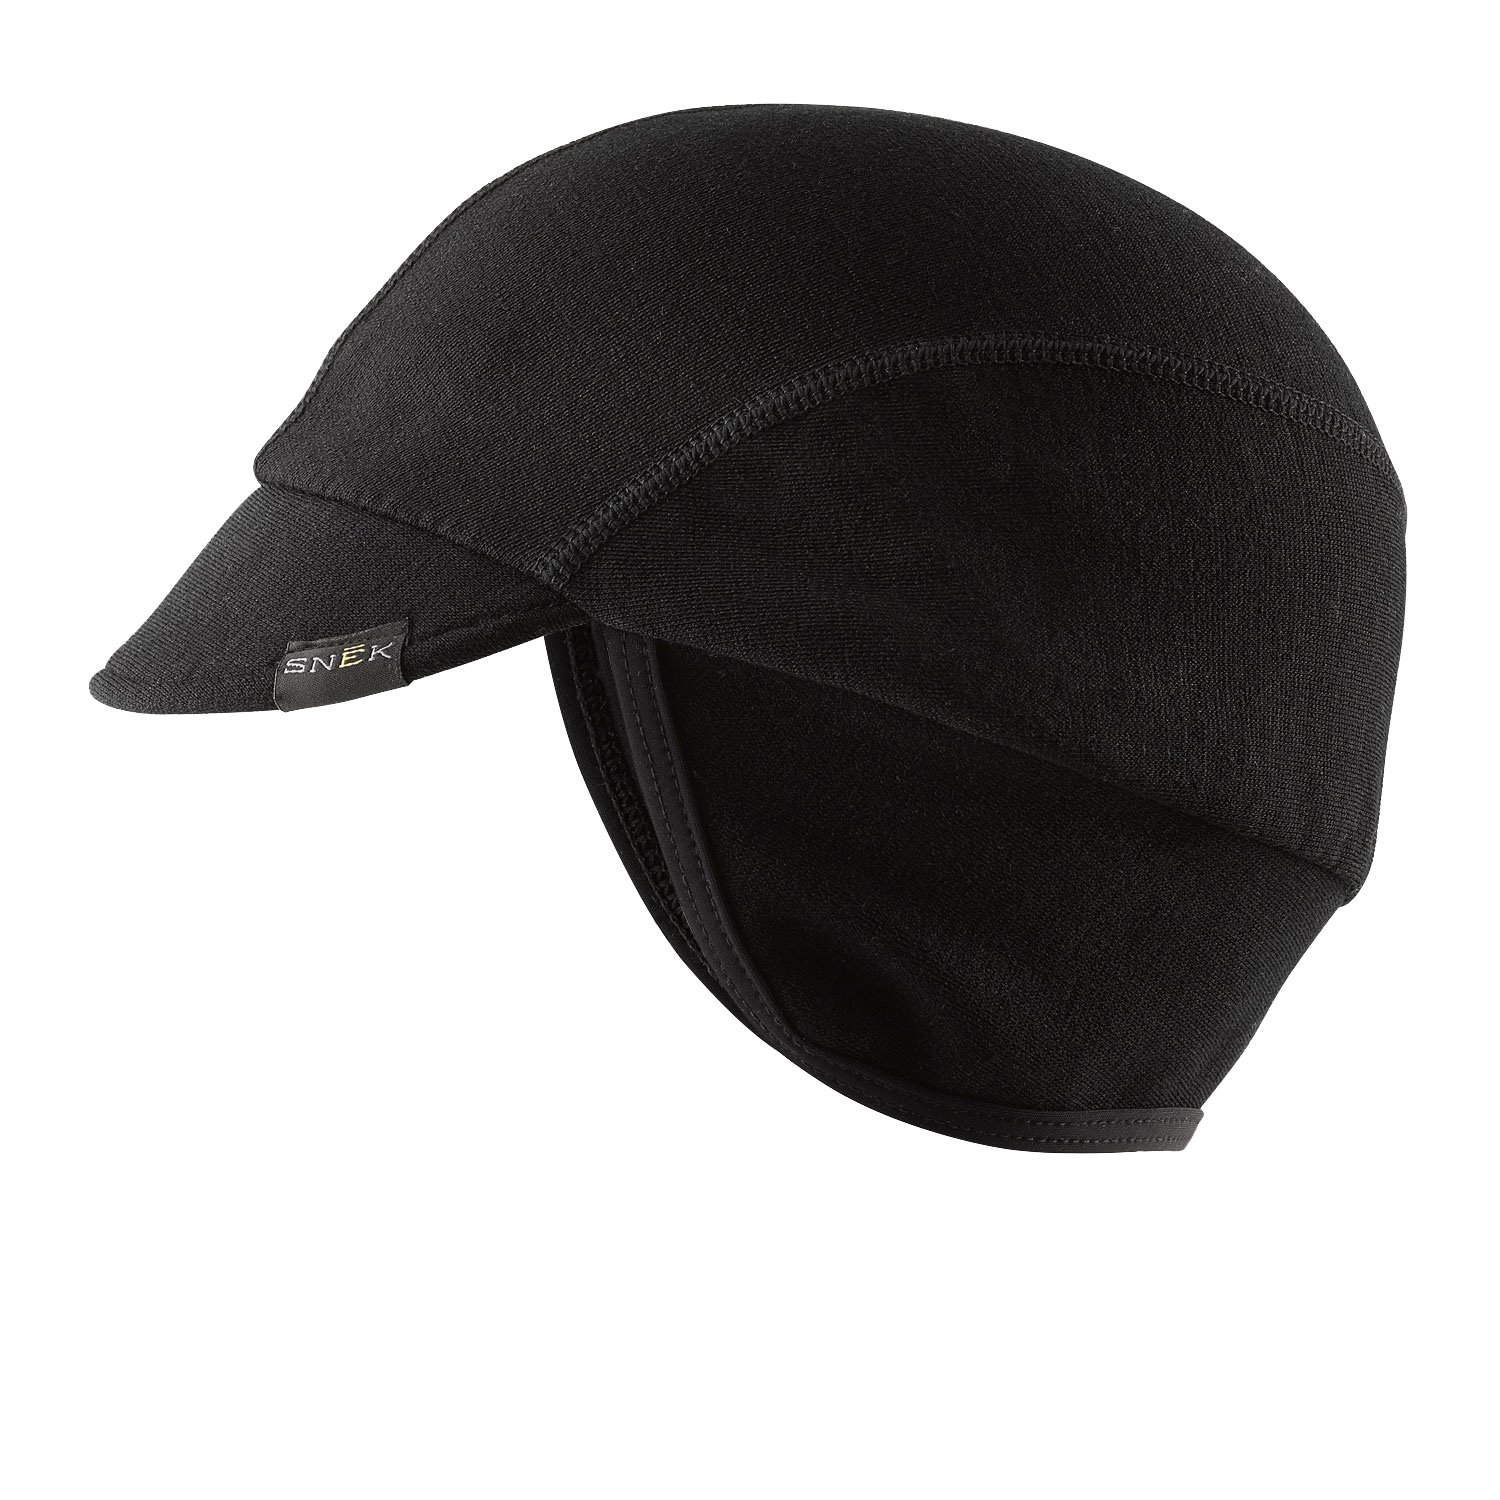 Black Snēk Cycling Cycling Caps Light to Heavy Weight  Made In The USA